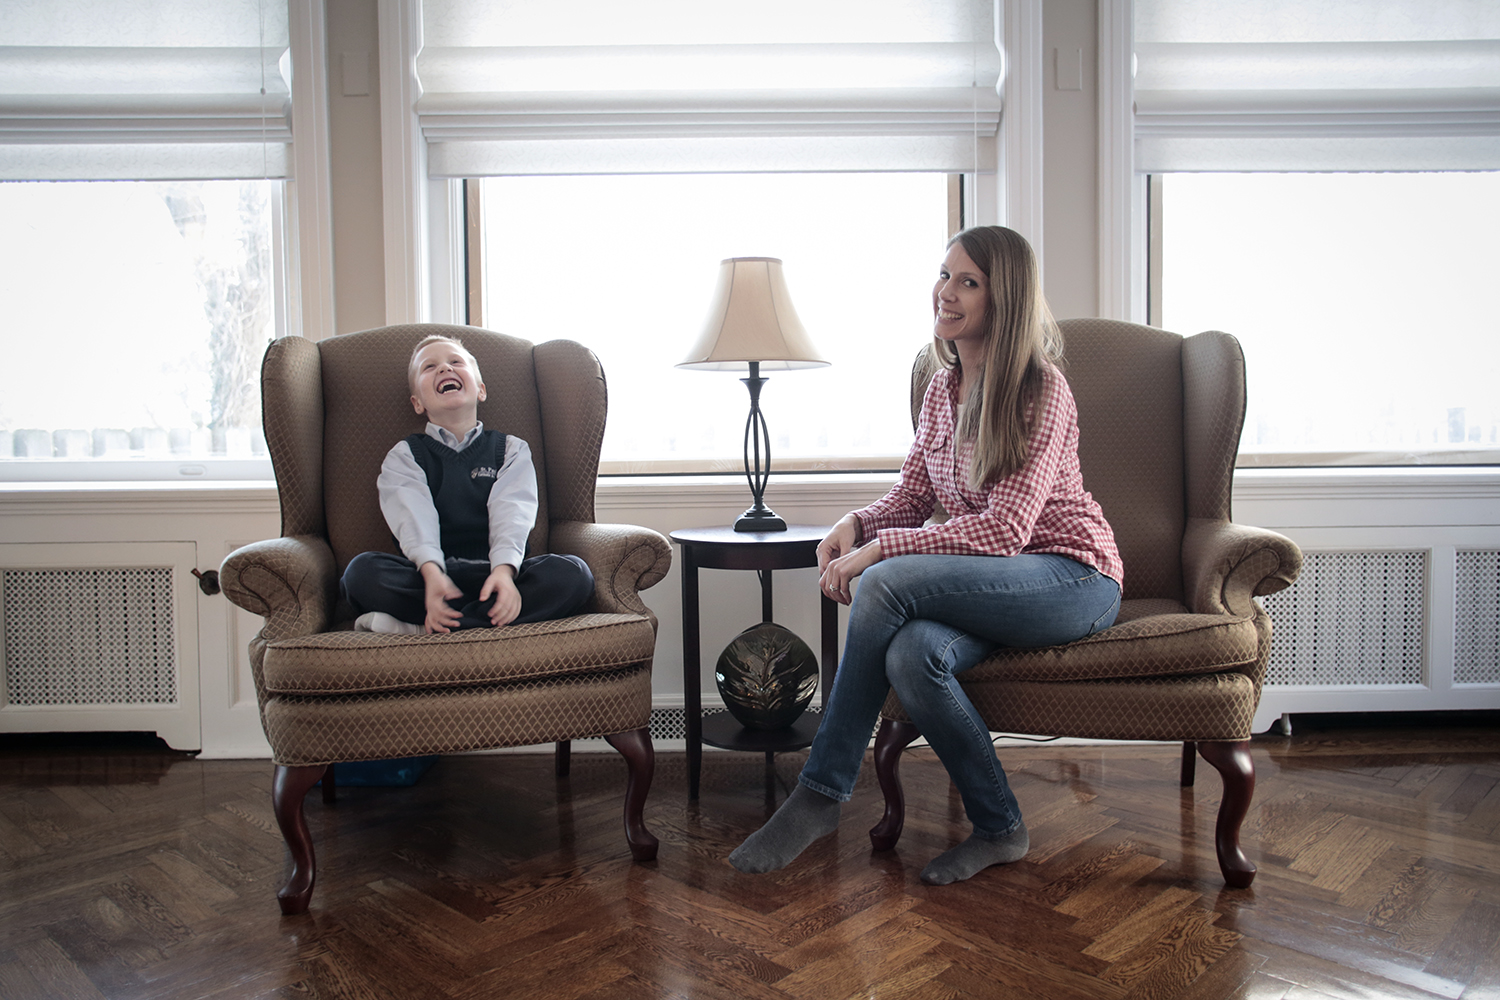 Riley Winkler, 6, left, and Jodi McKay sit in their home in Indian Village on Wednesday, Jan. 7, 2015 in Detroit. Tim Galloway/Special for DFP